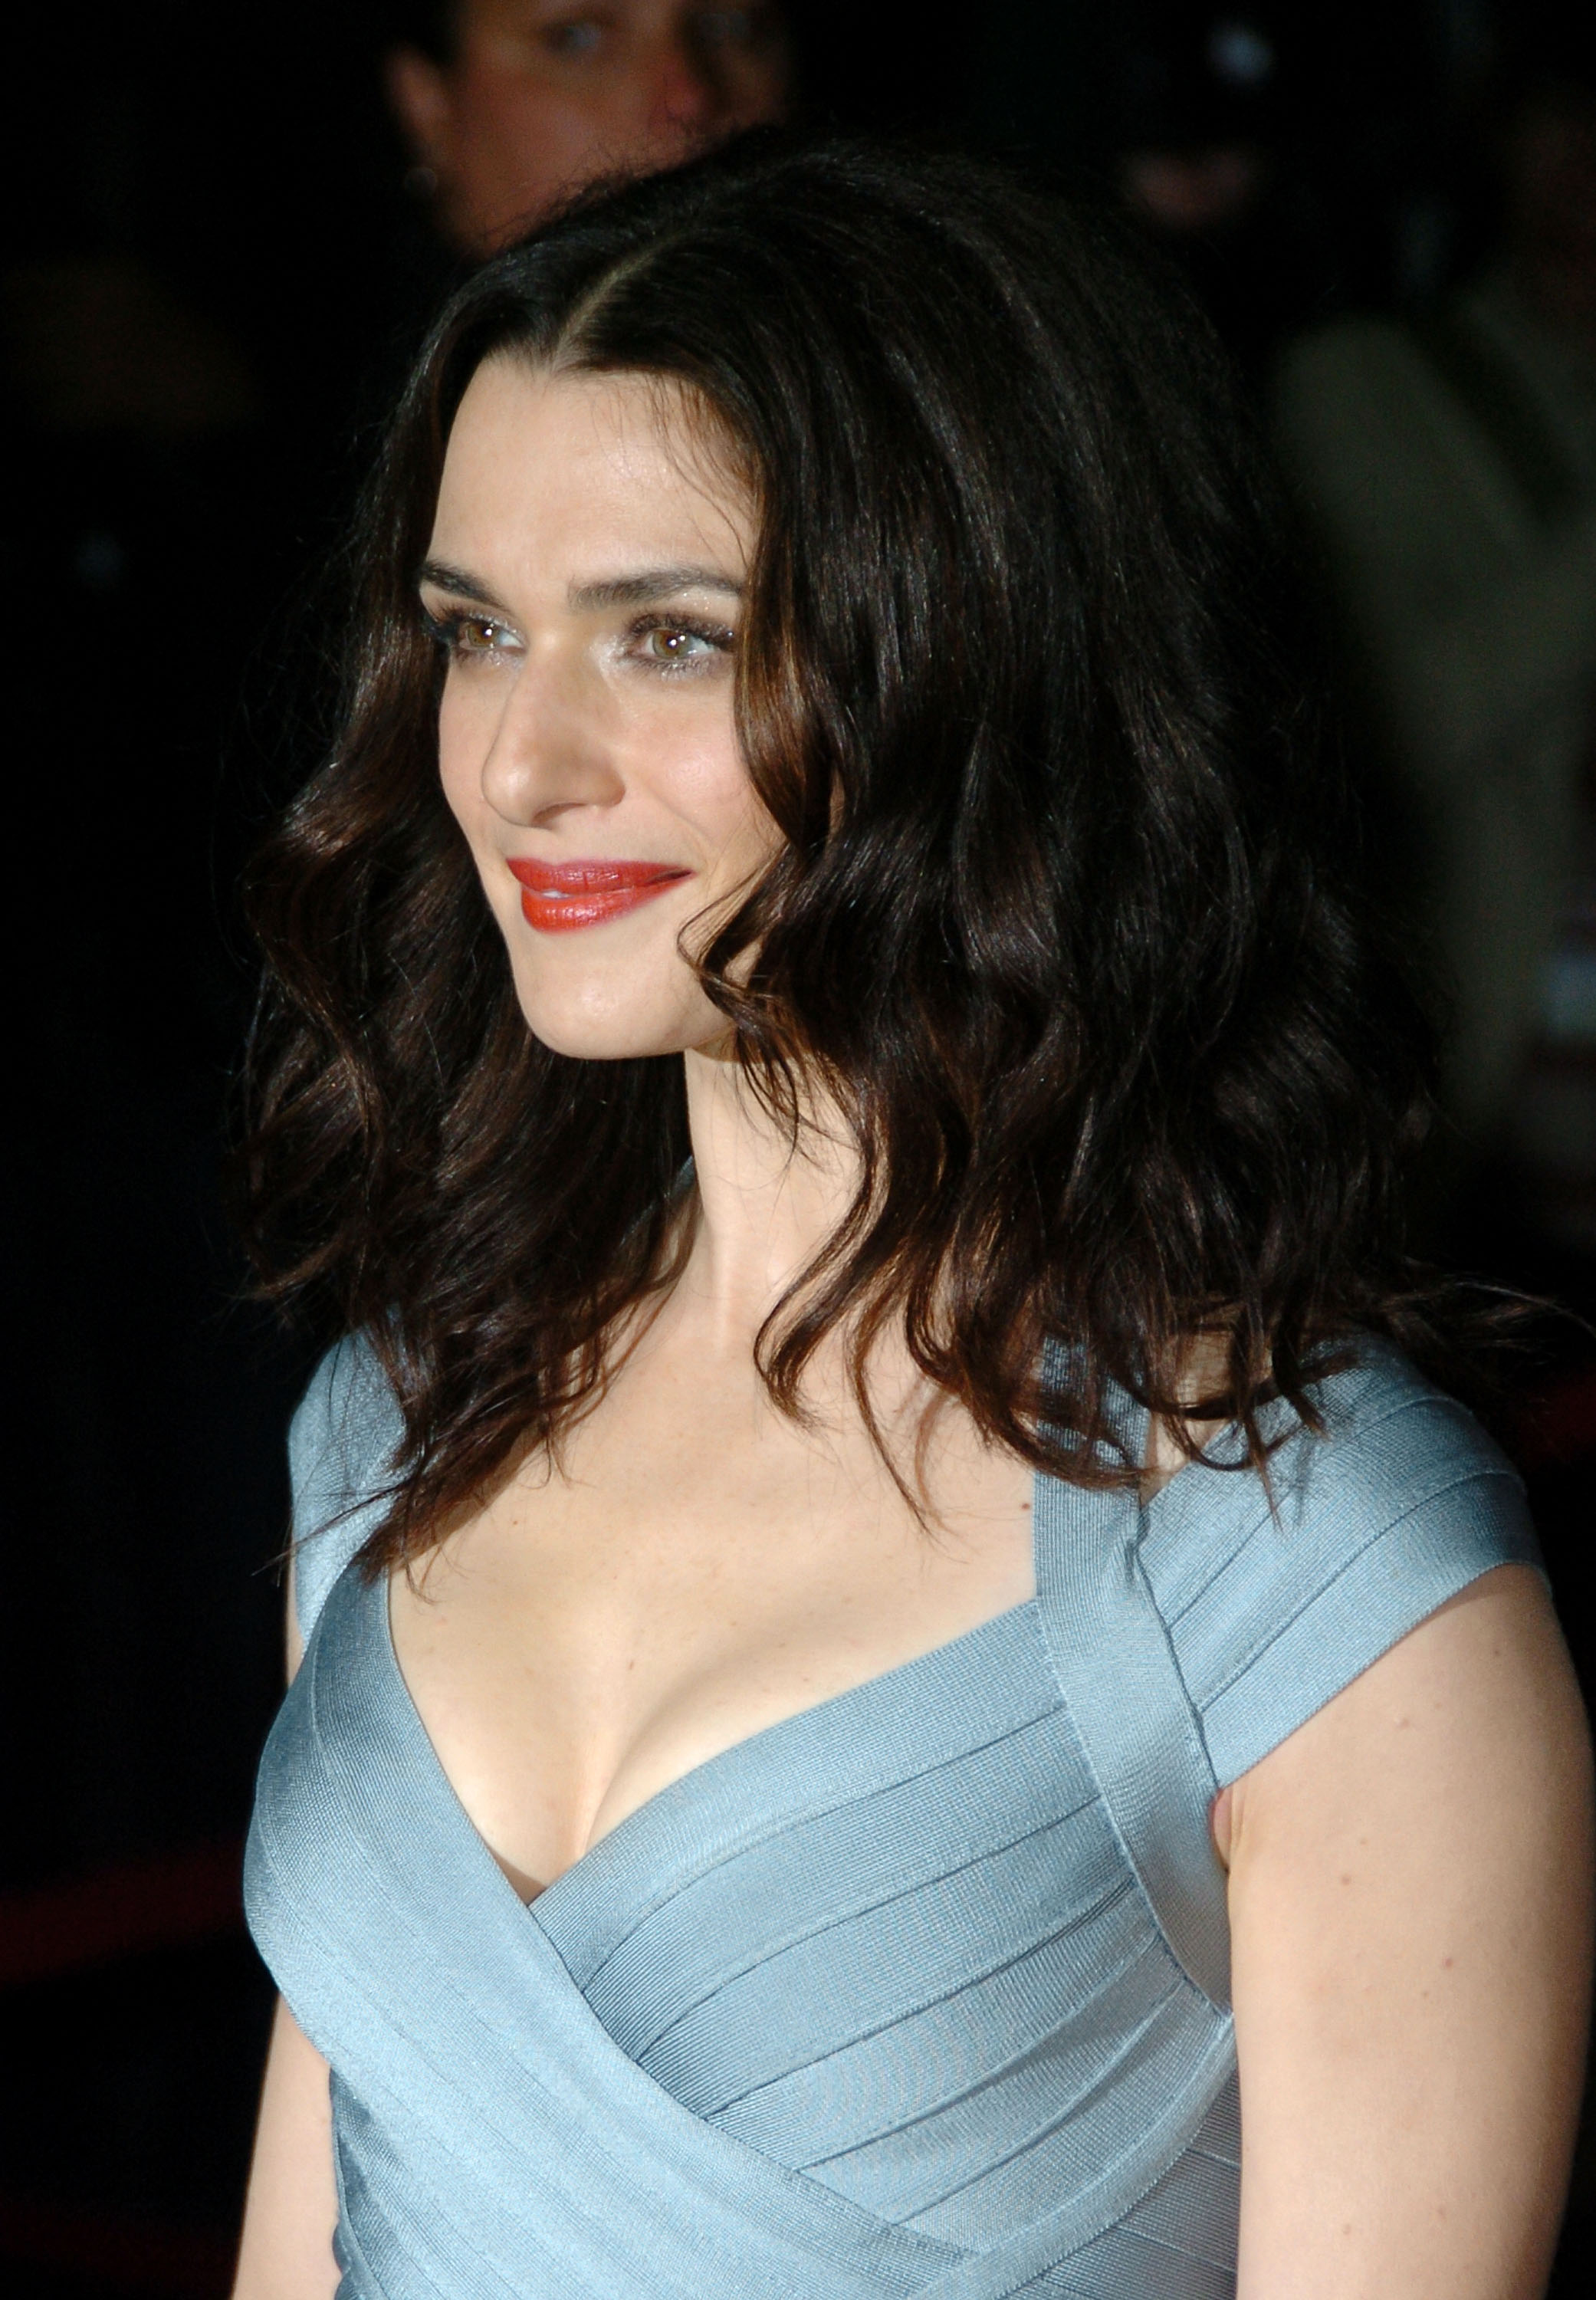 26484_Celebutopia-Rachel_Weisz-The_Brothers_Bloom_premiere_during_the_2008_Toronto_International_Film_Festival-17_122_990lo.jpg